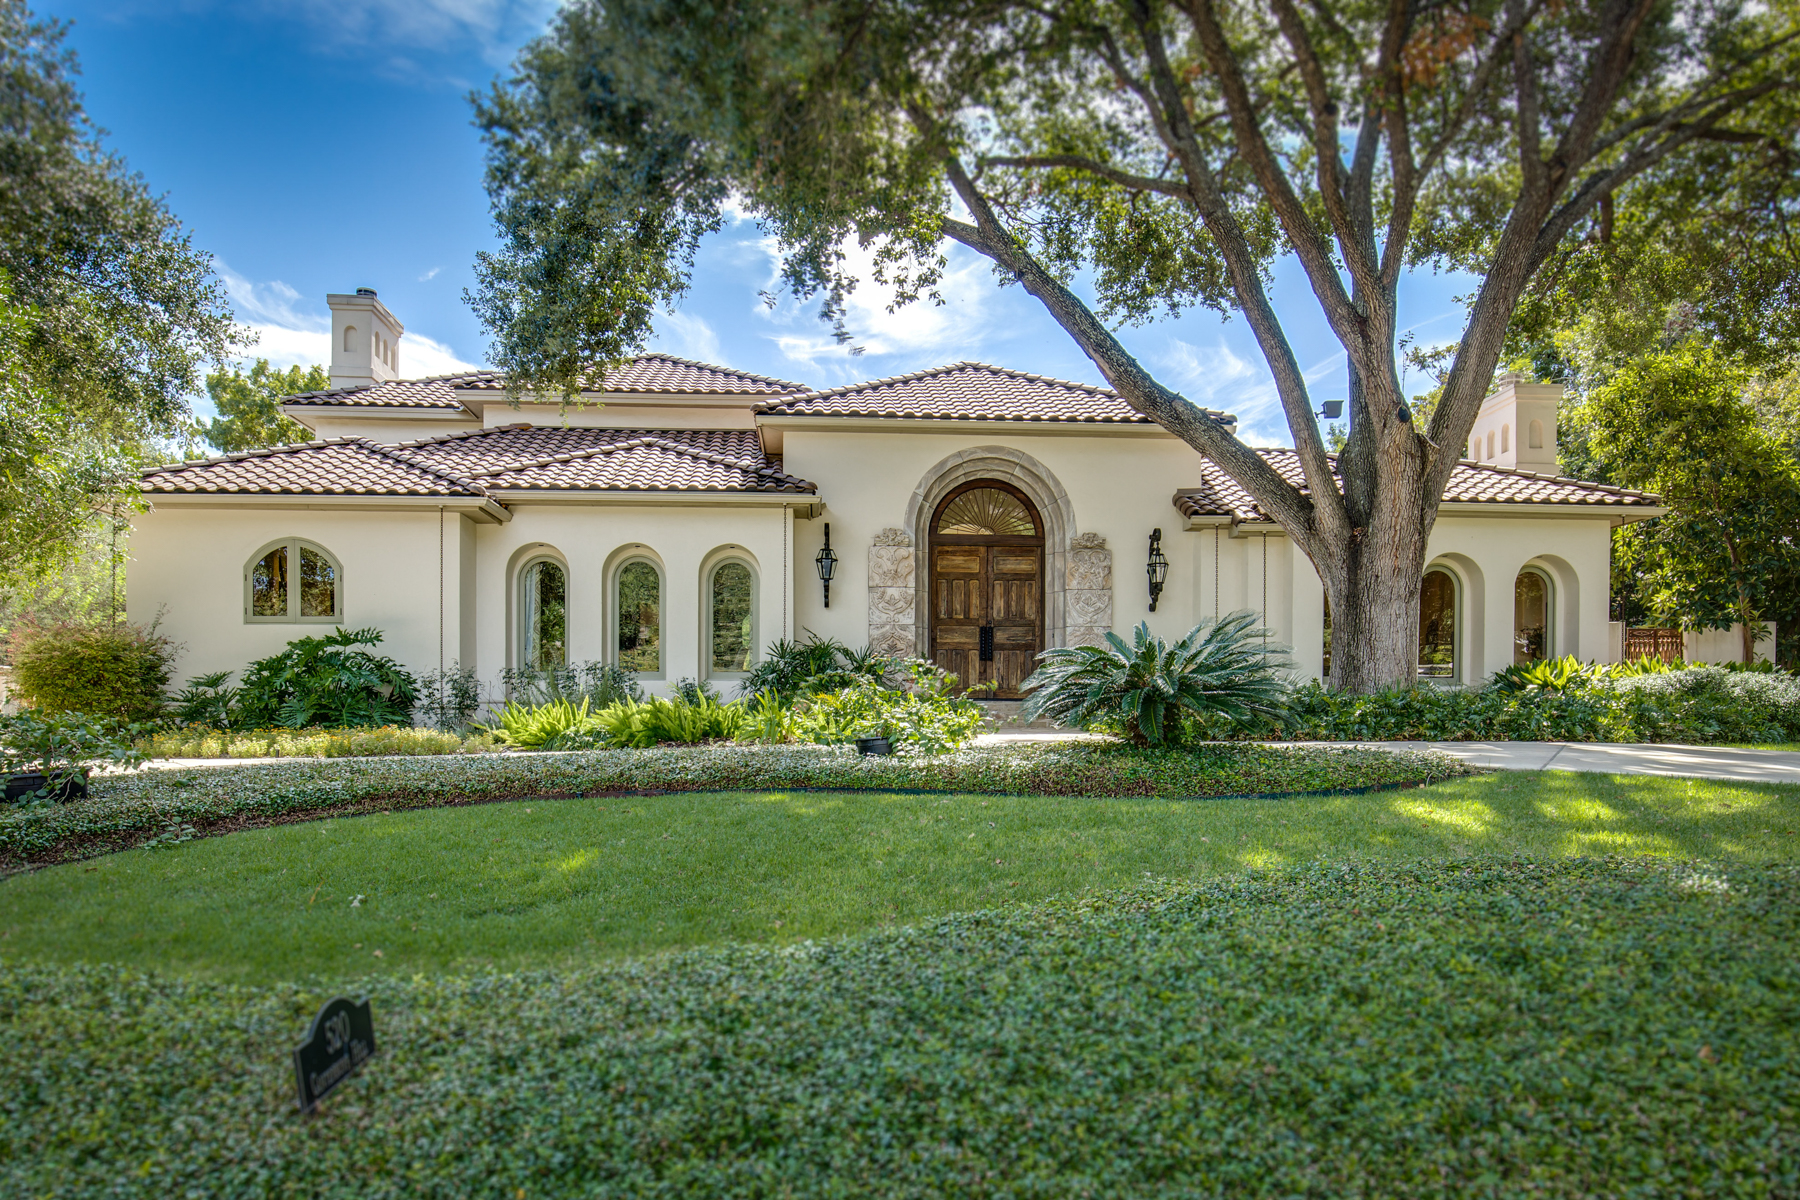 Moradia para Venda às Luxurious Retreat in Terrell Hills 520 Canterbury Hill San Antonio, Texas 78209 Estados Unidos